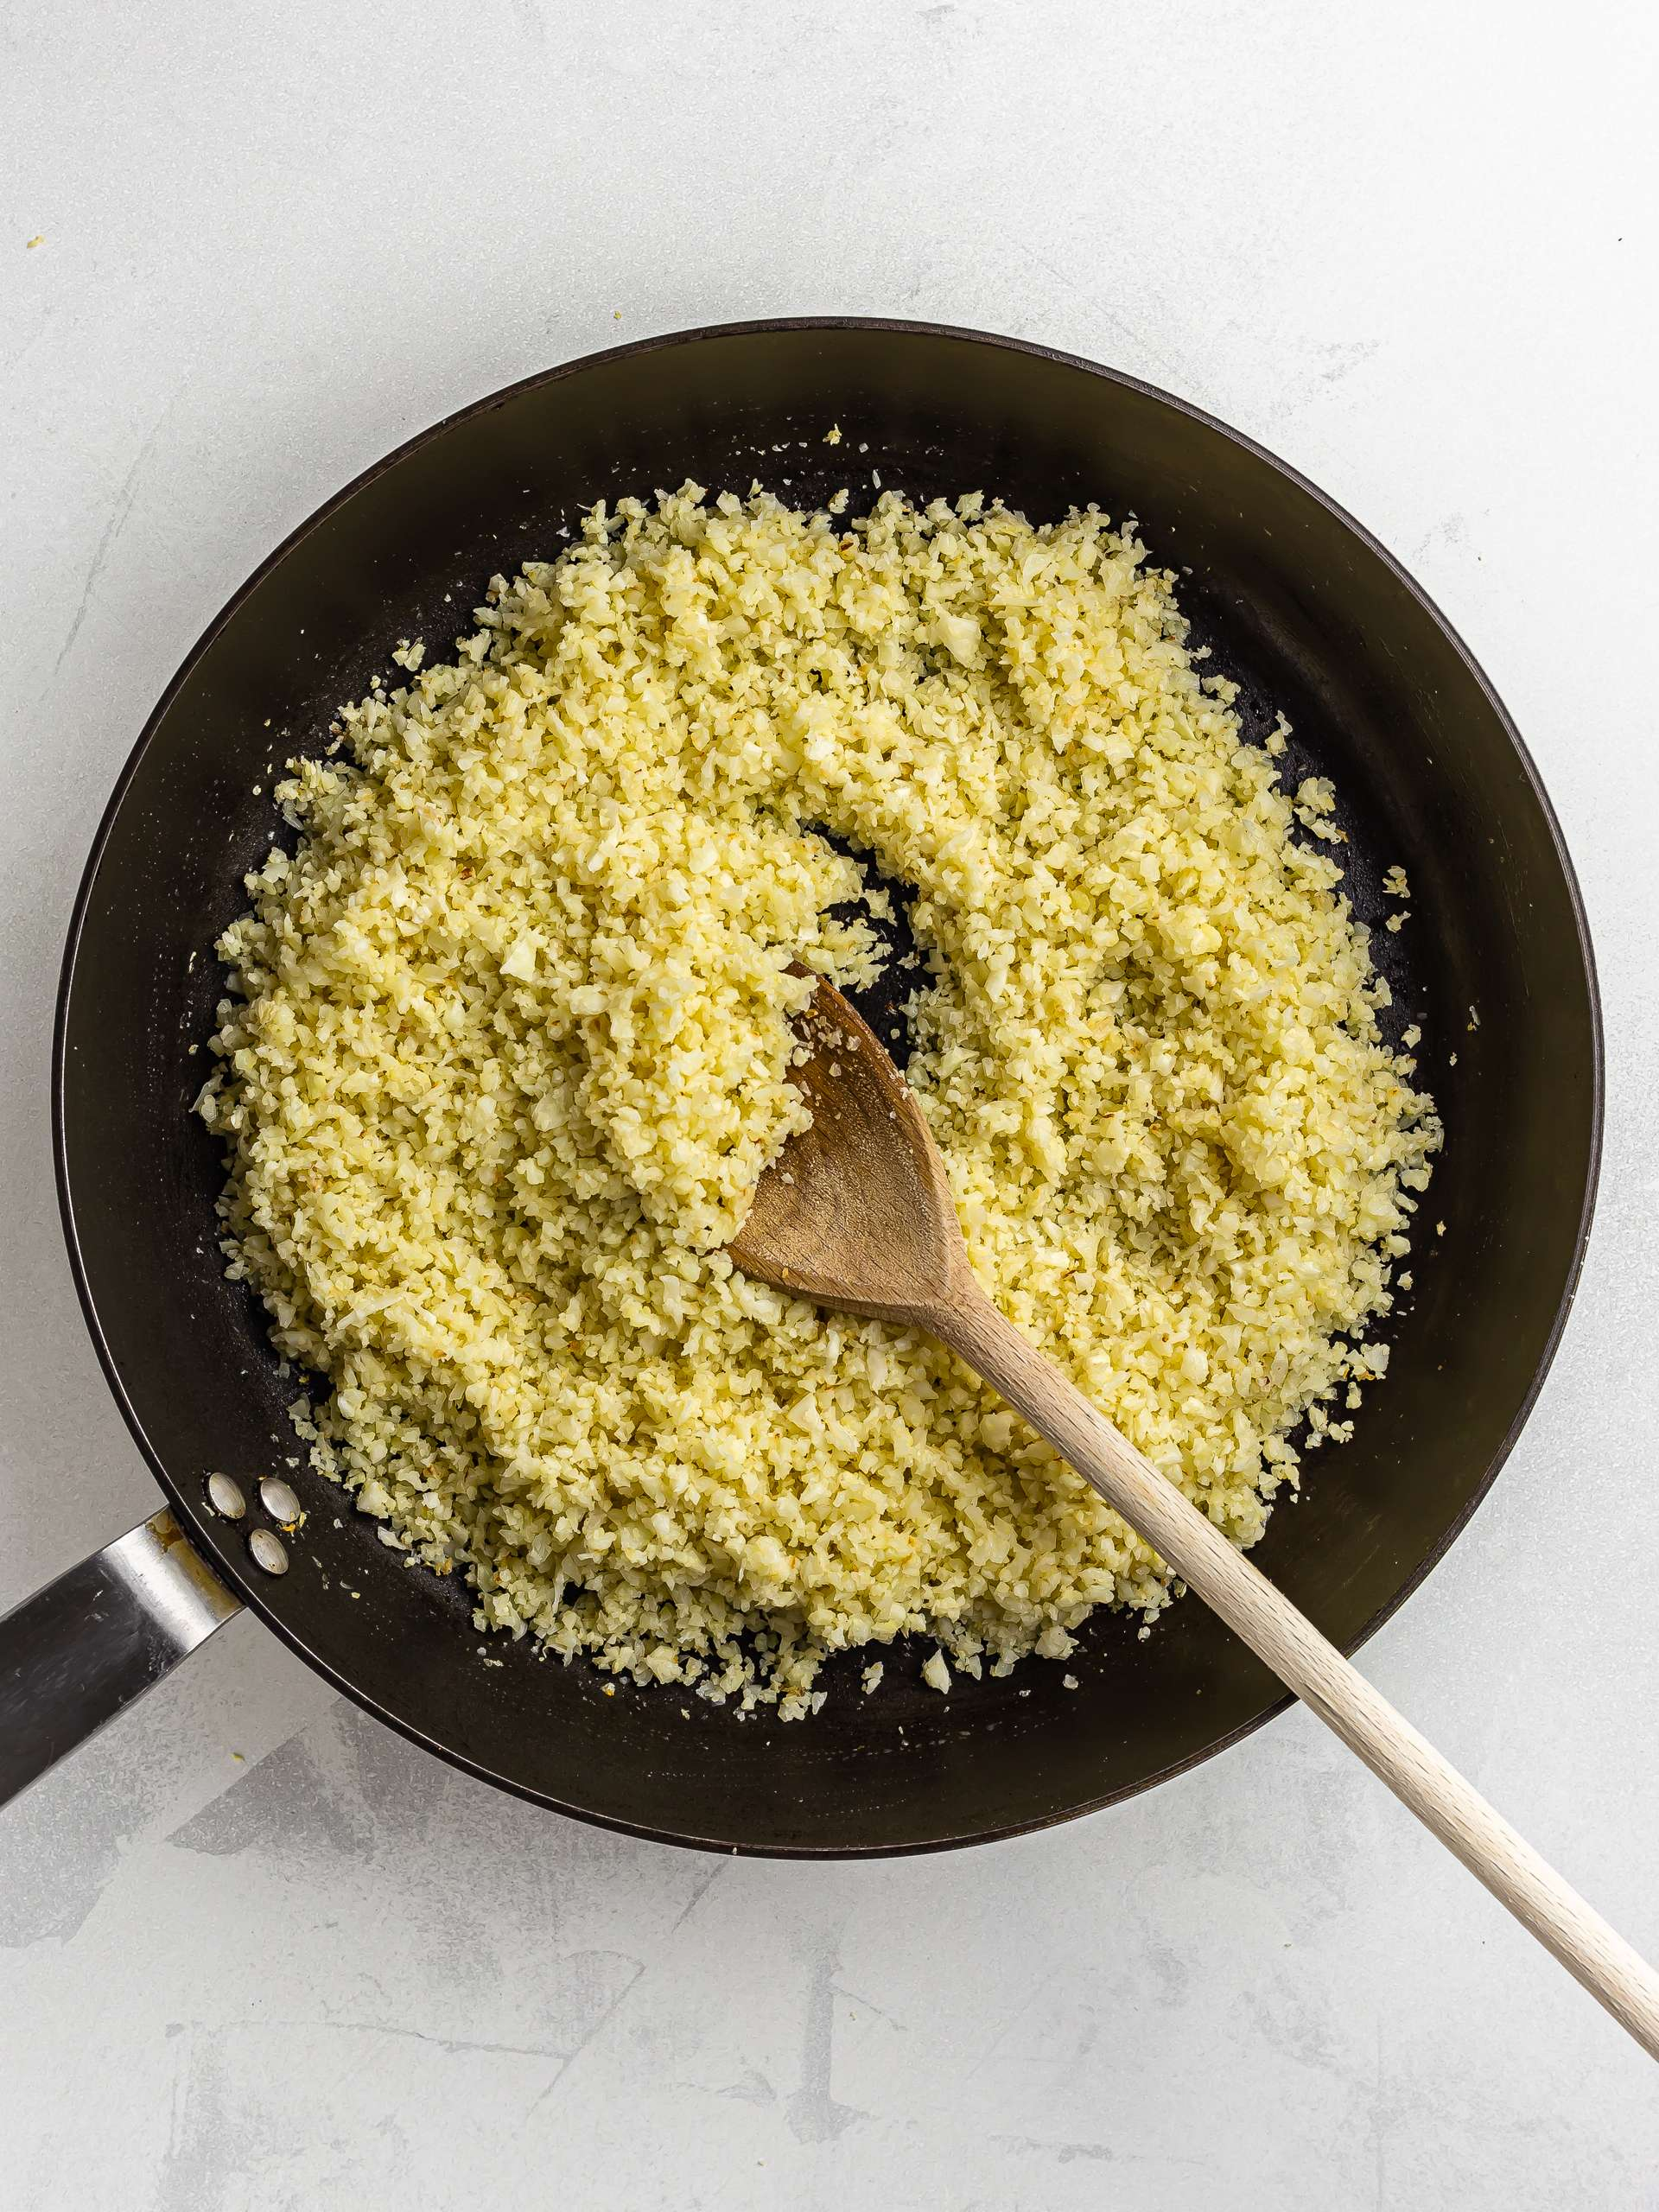 cooked cauliflower rice in a skillet